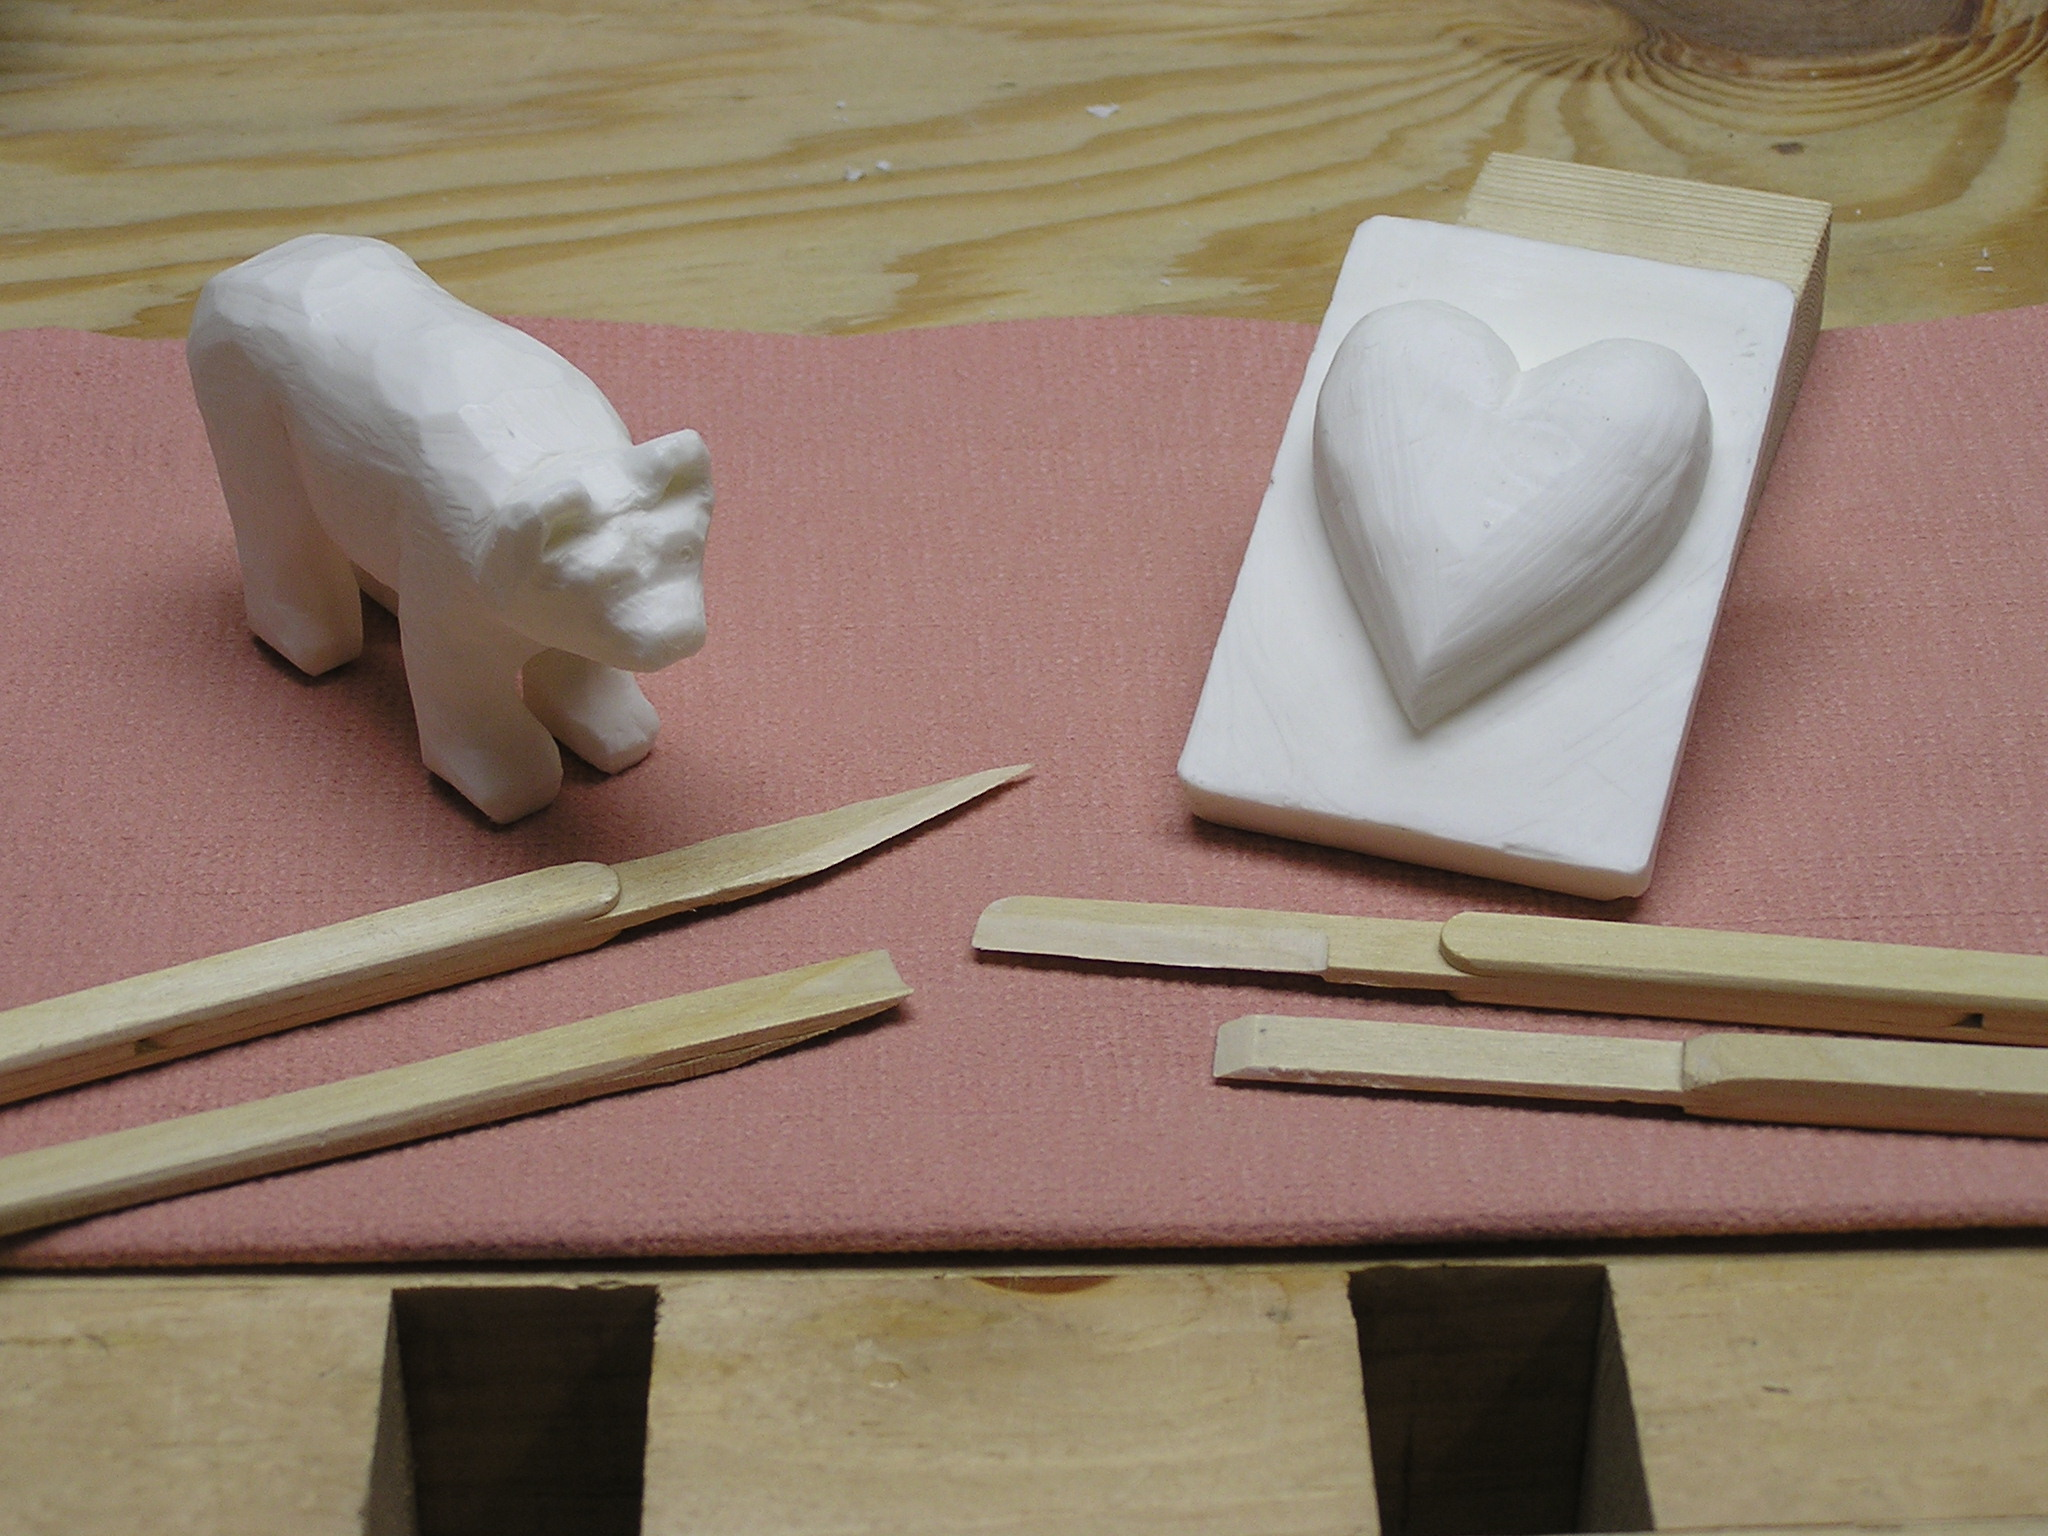 soap carving templates - soap whittling templates choice image template design ideas